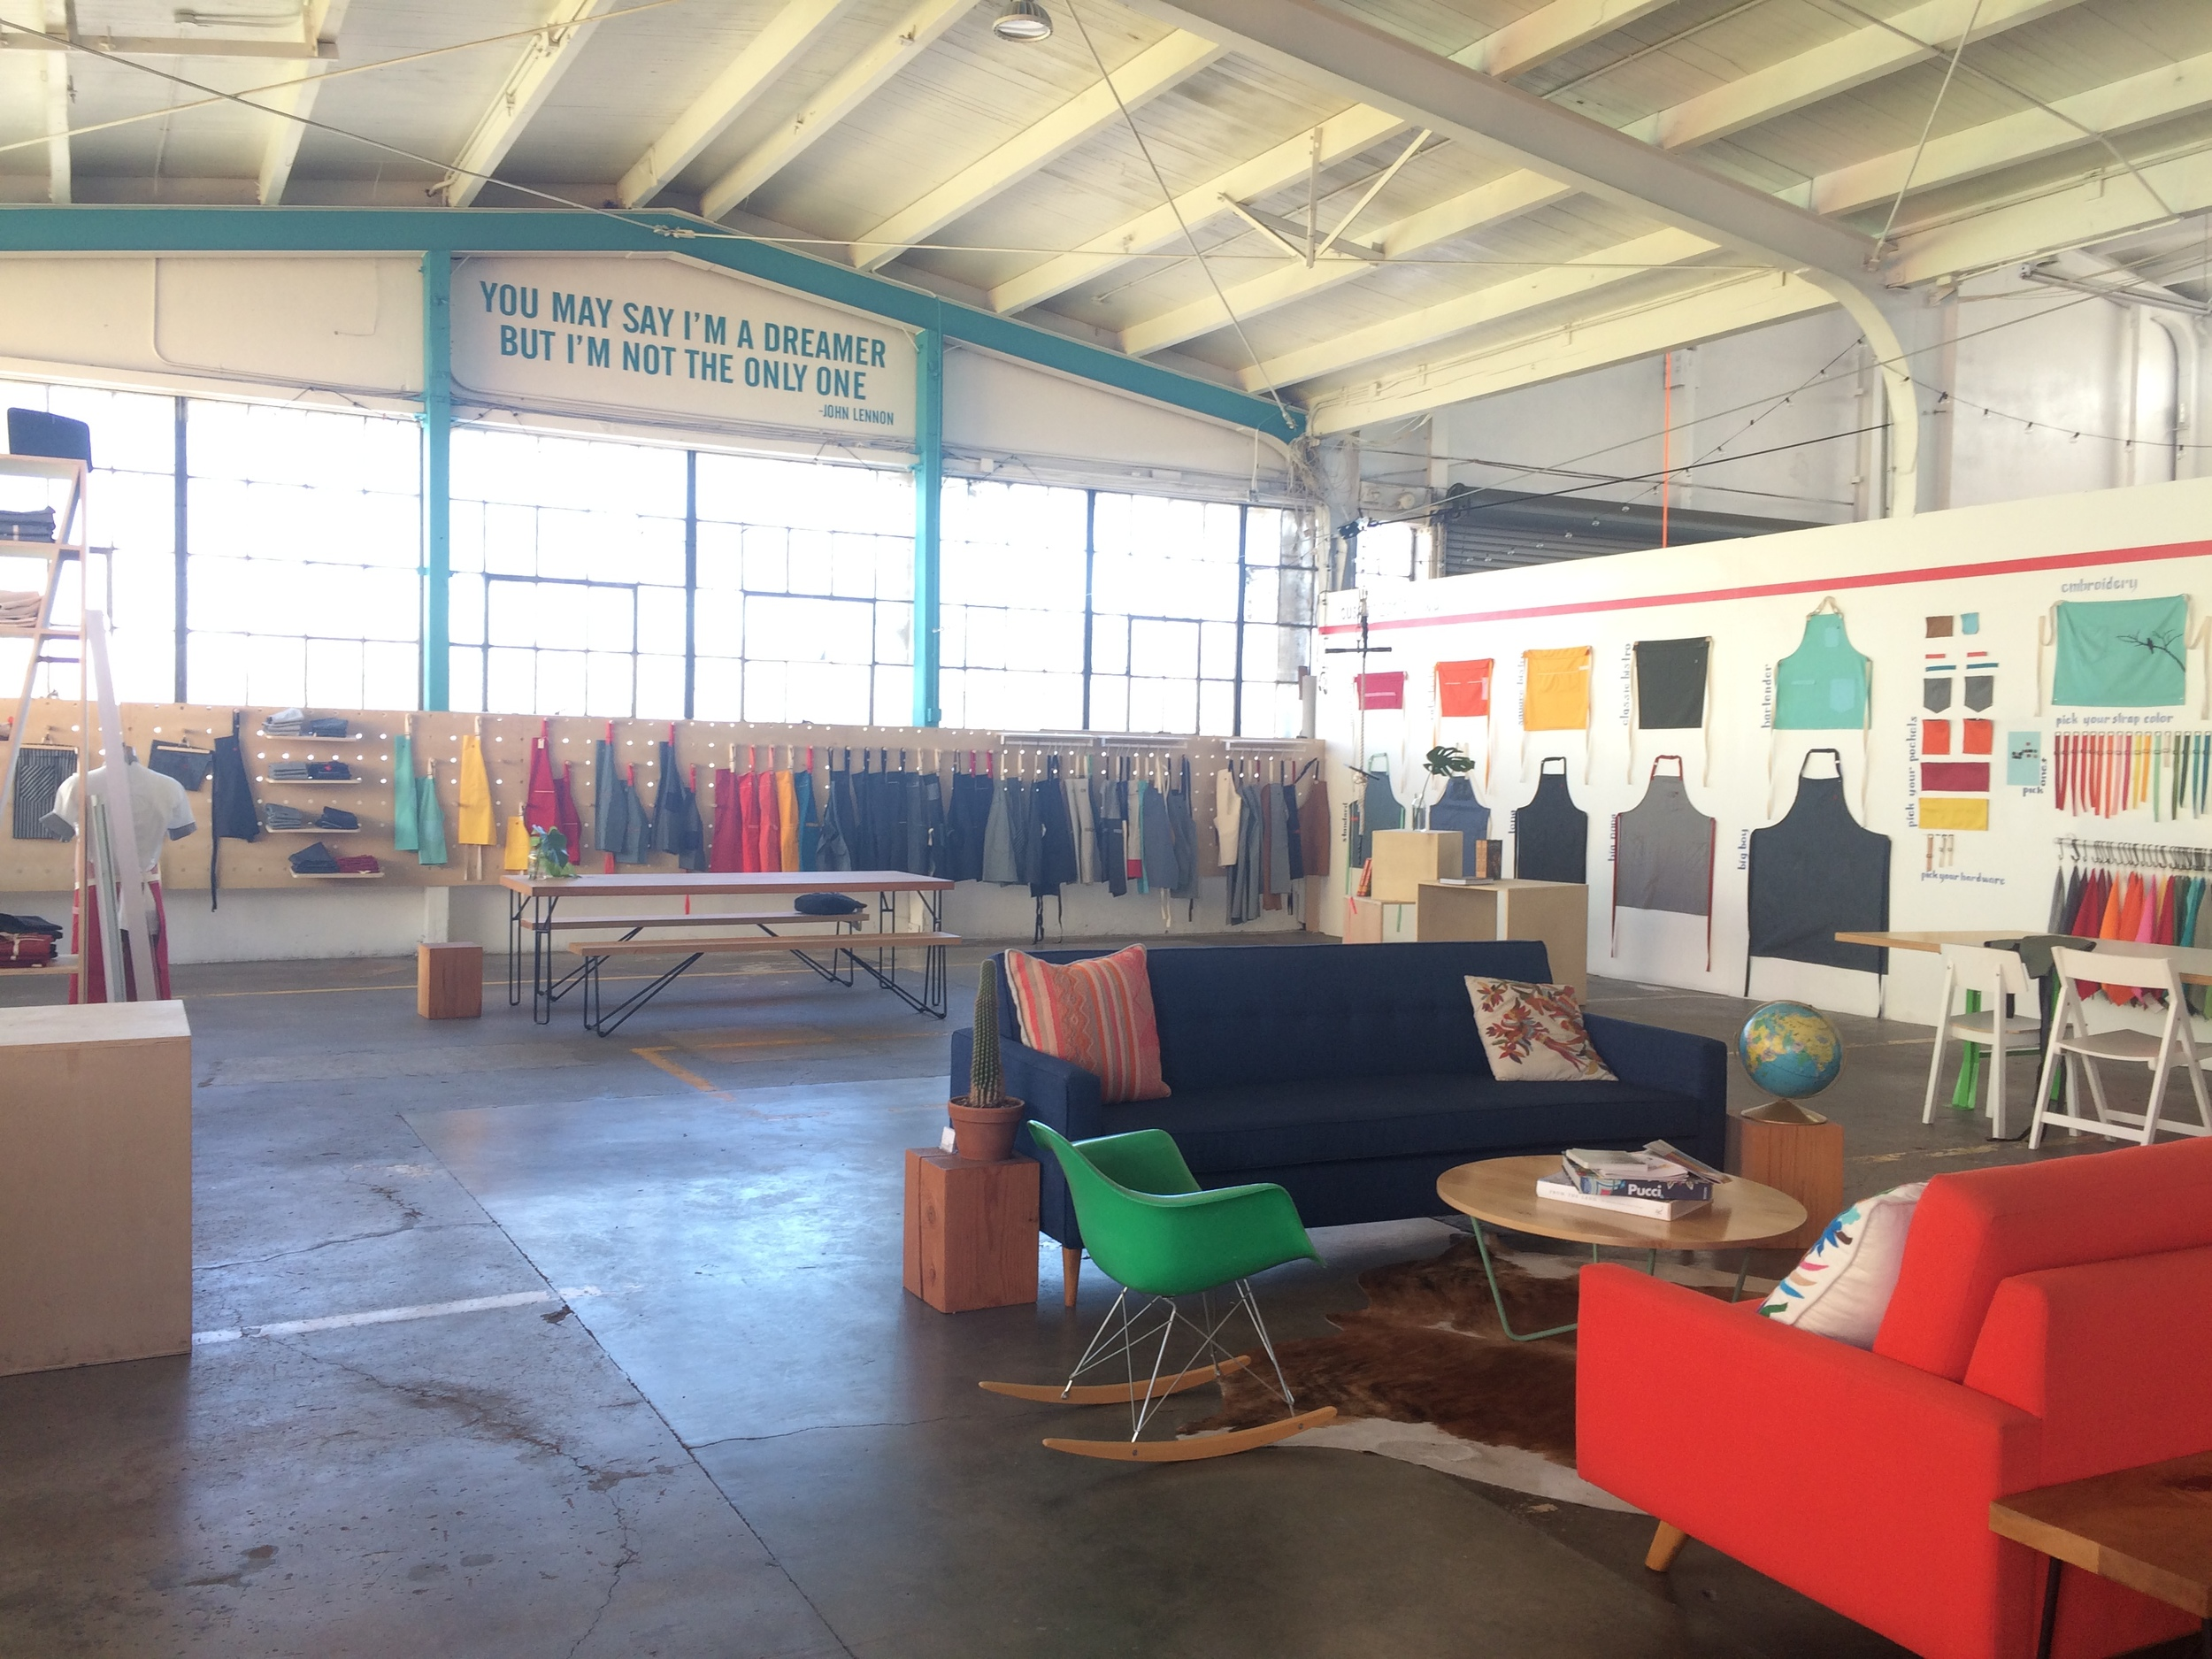 Inside the  hedley & bennett  apron studio. Colorful and charming!